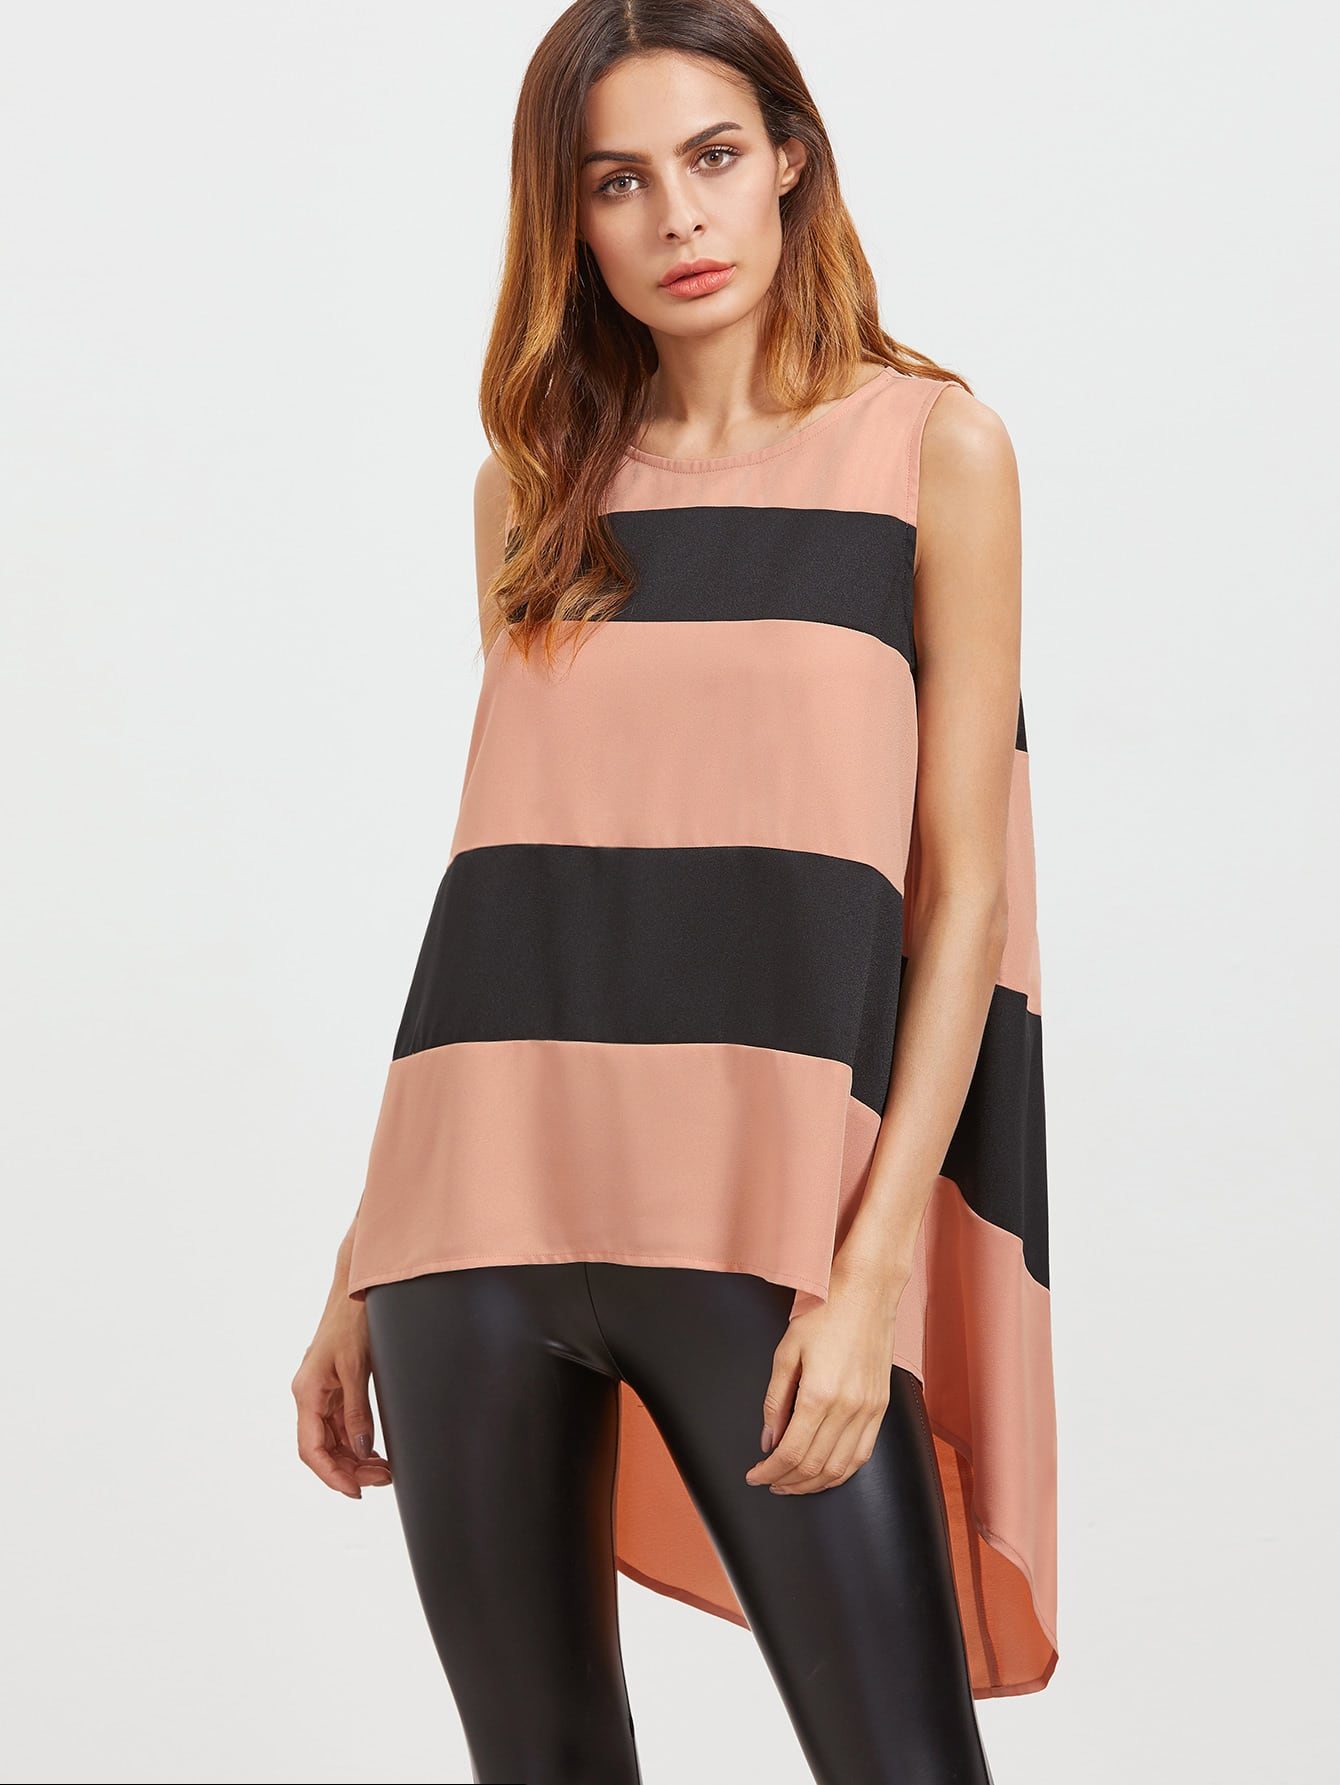 Contrast Wide Striped Keyhole Back High Low Sleeveless Top vest161227704